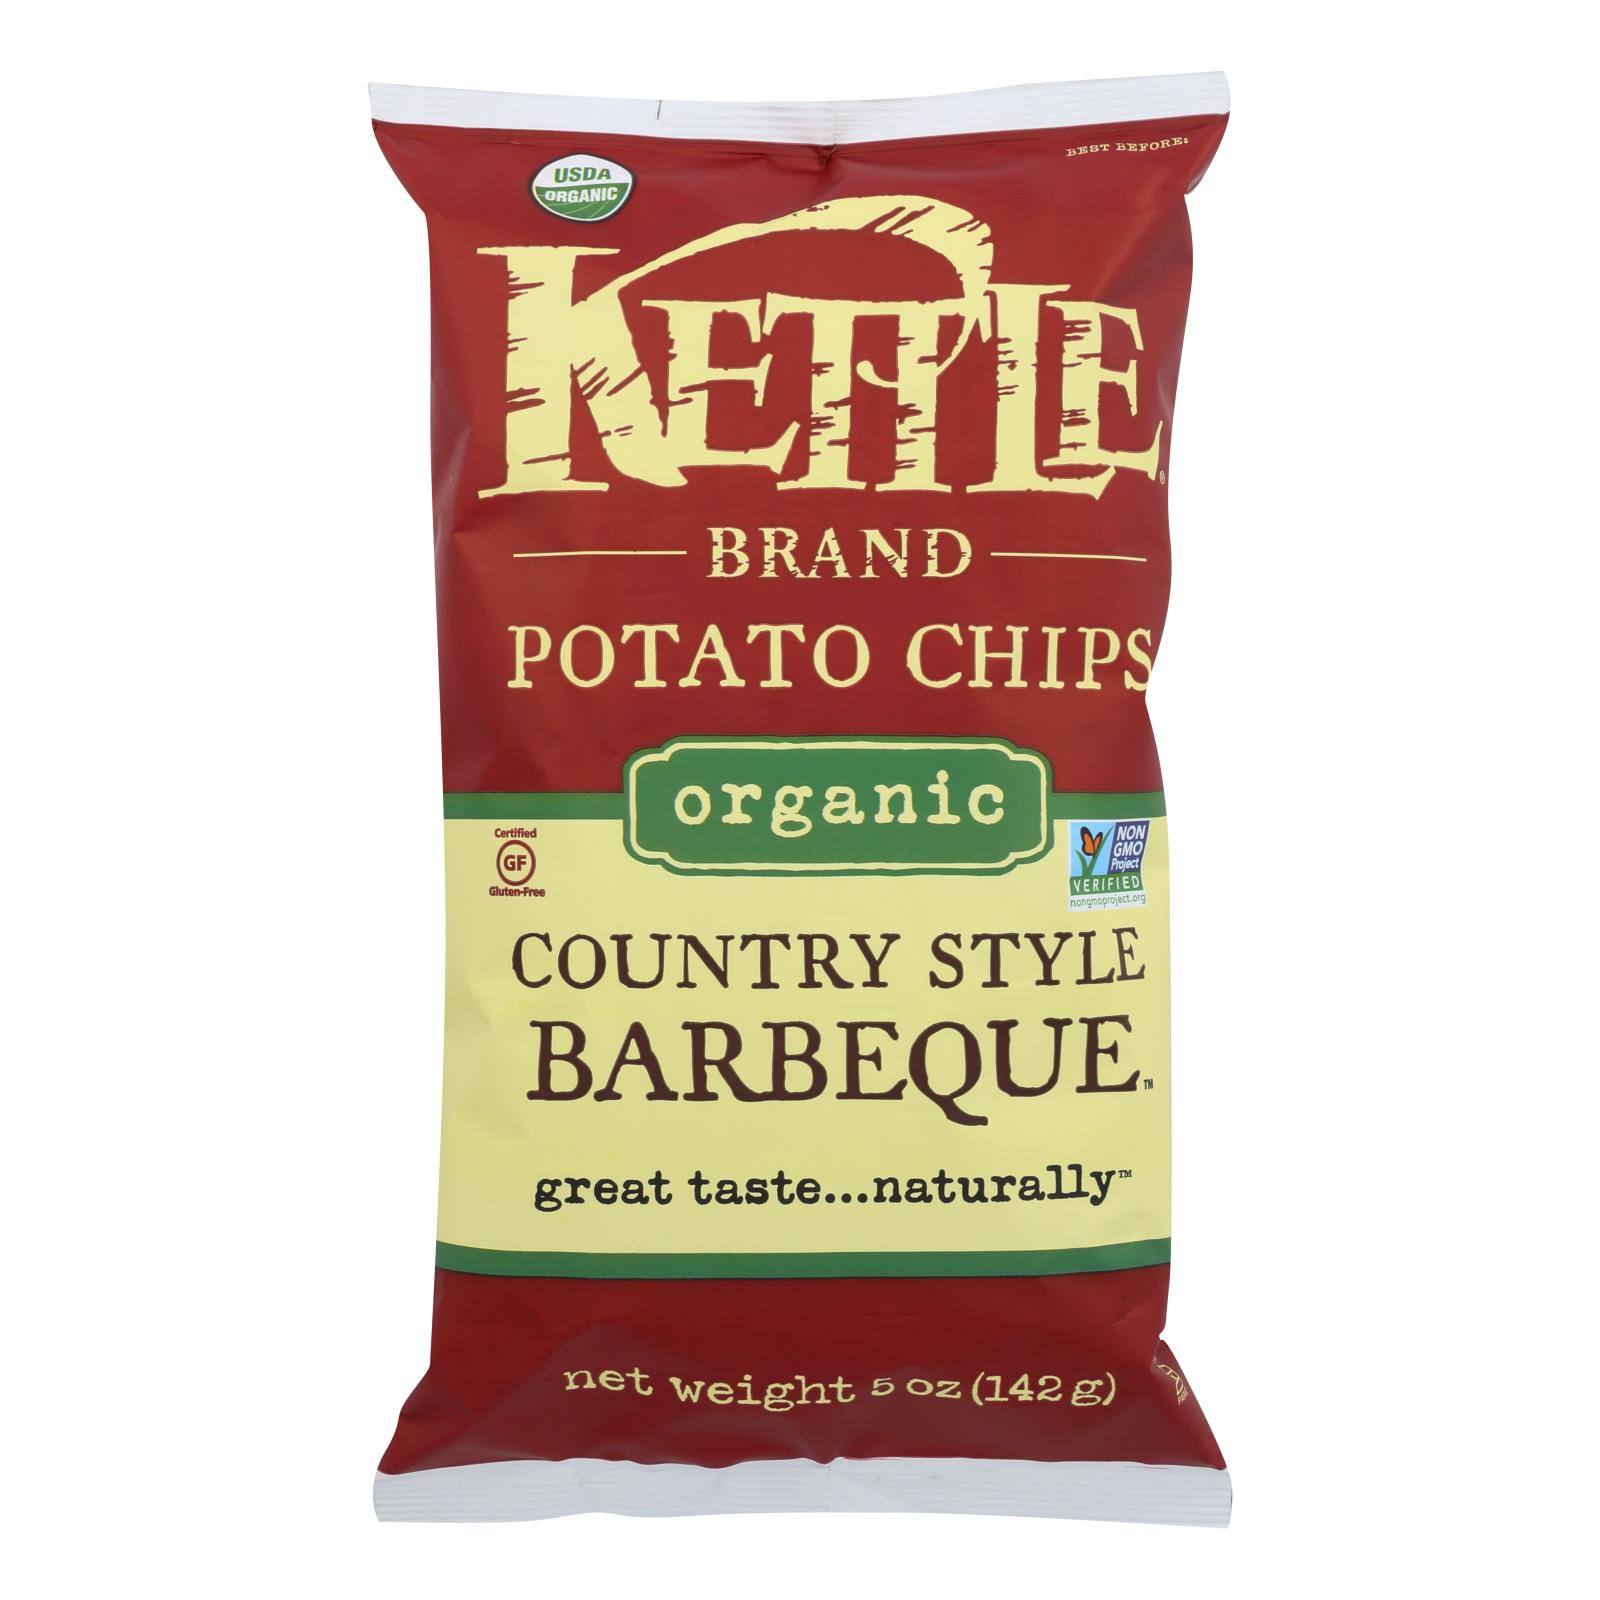 Kettle Brand Potato Chips - Country Style Barbeque - Case of 15 - 5 oz.